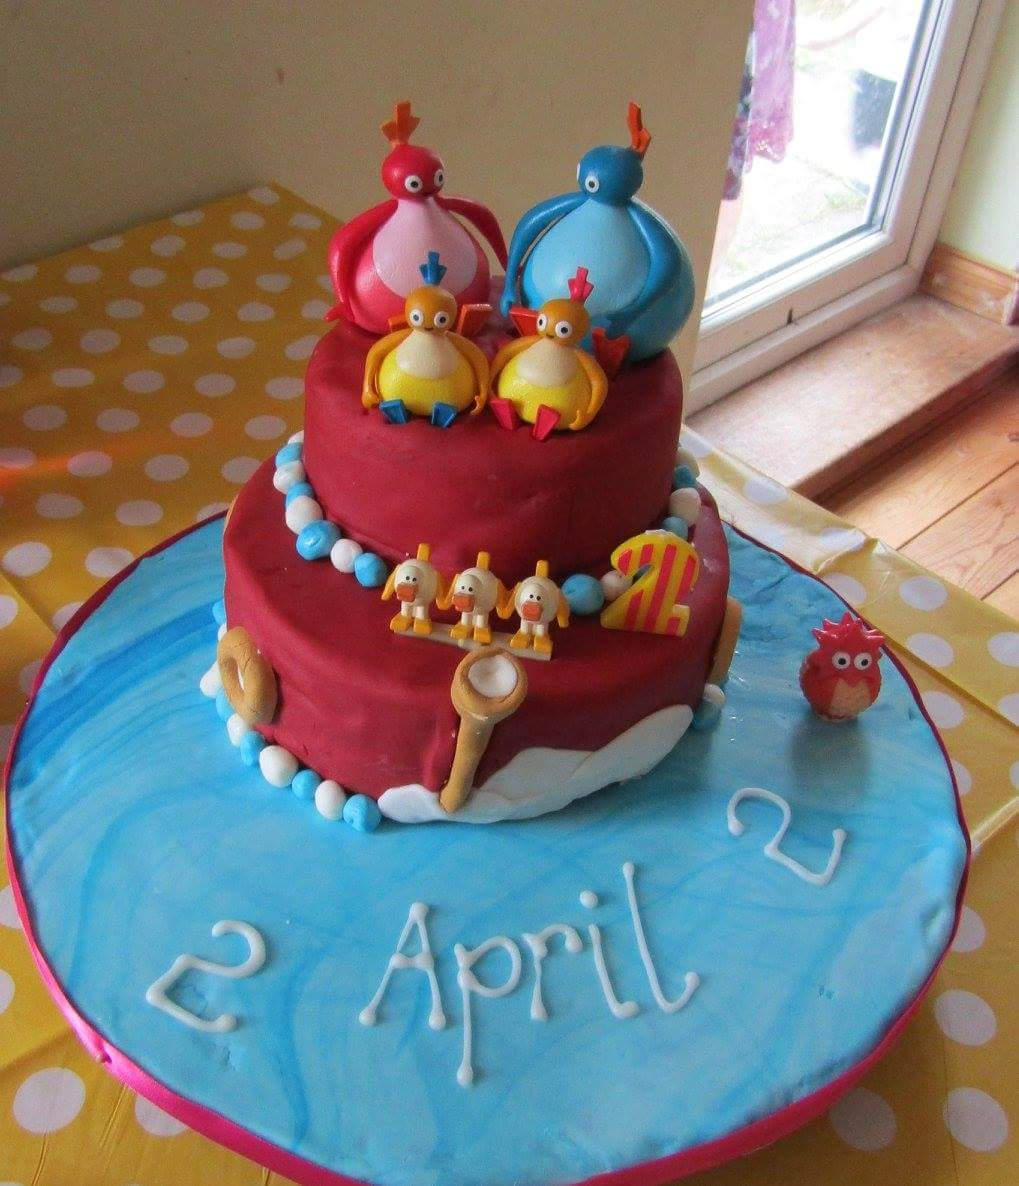 Birthday Wishes On Cake For Mom Image Inspiration of Cake and